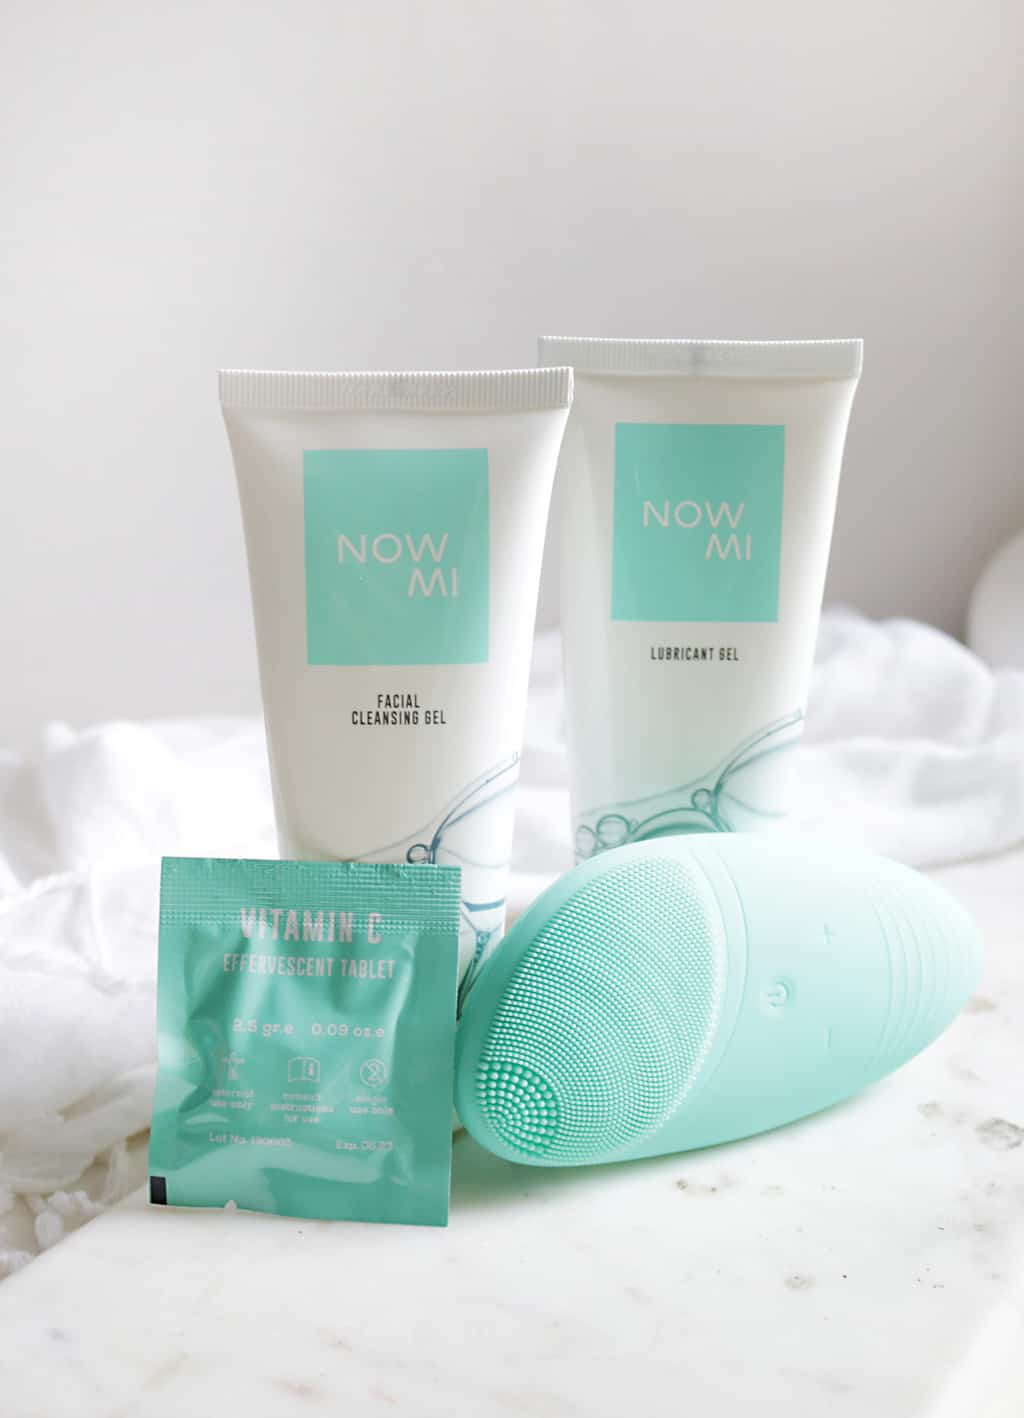 NowMi Pro | The Two In One Sonic Cleansing and At Home Facial Device